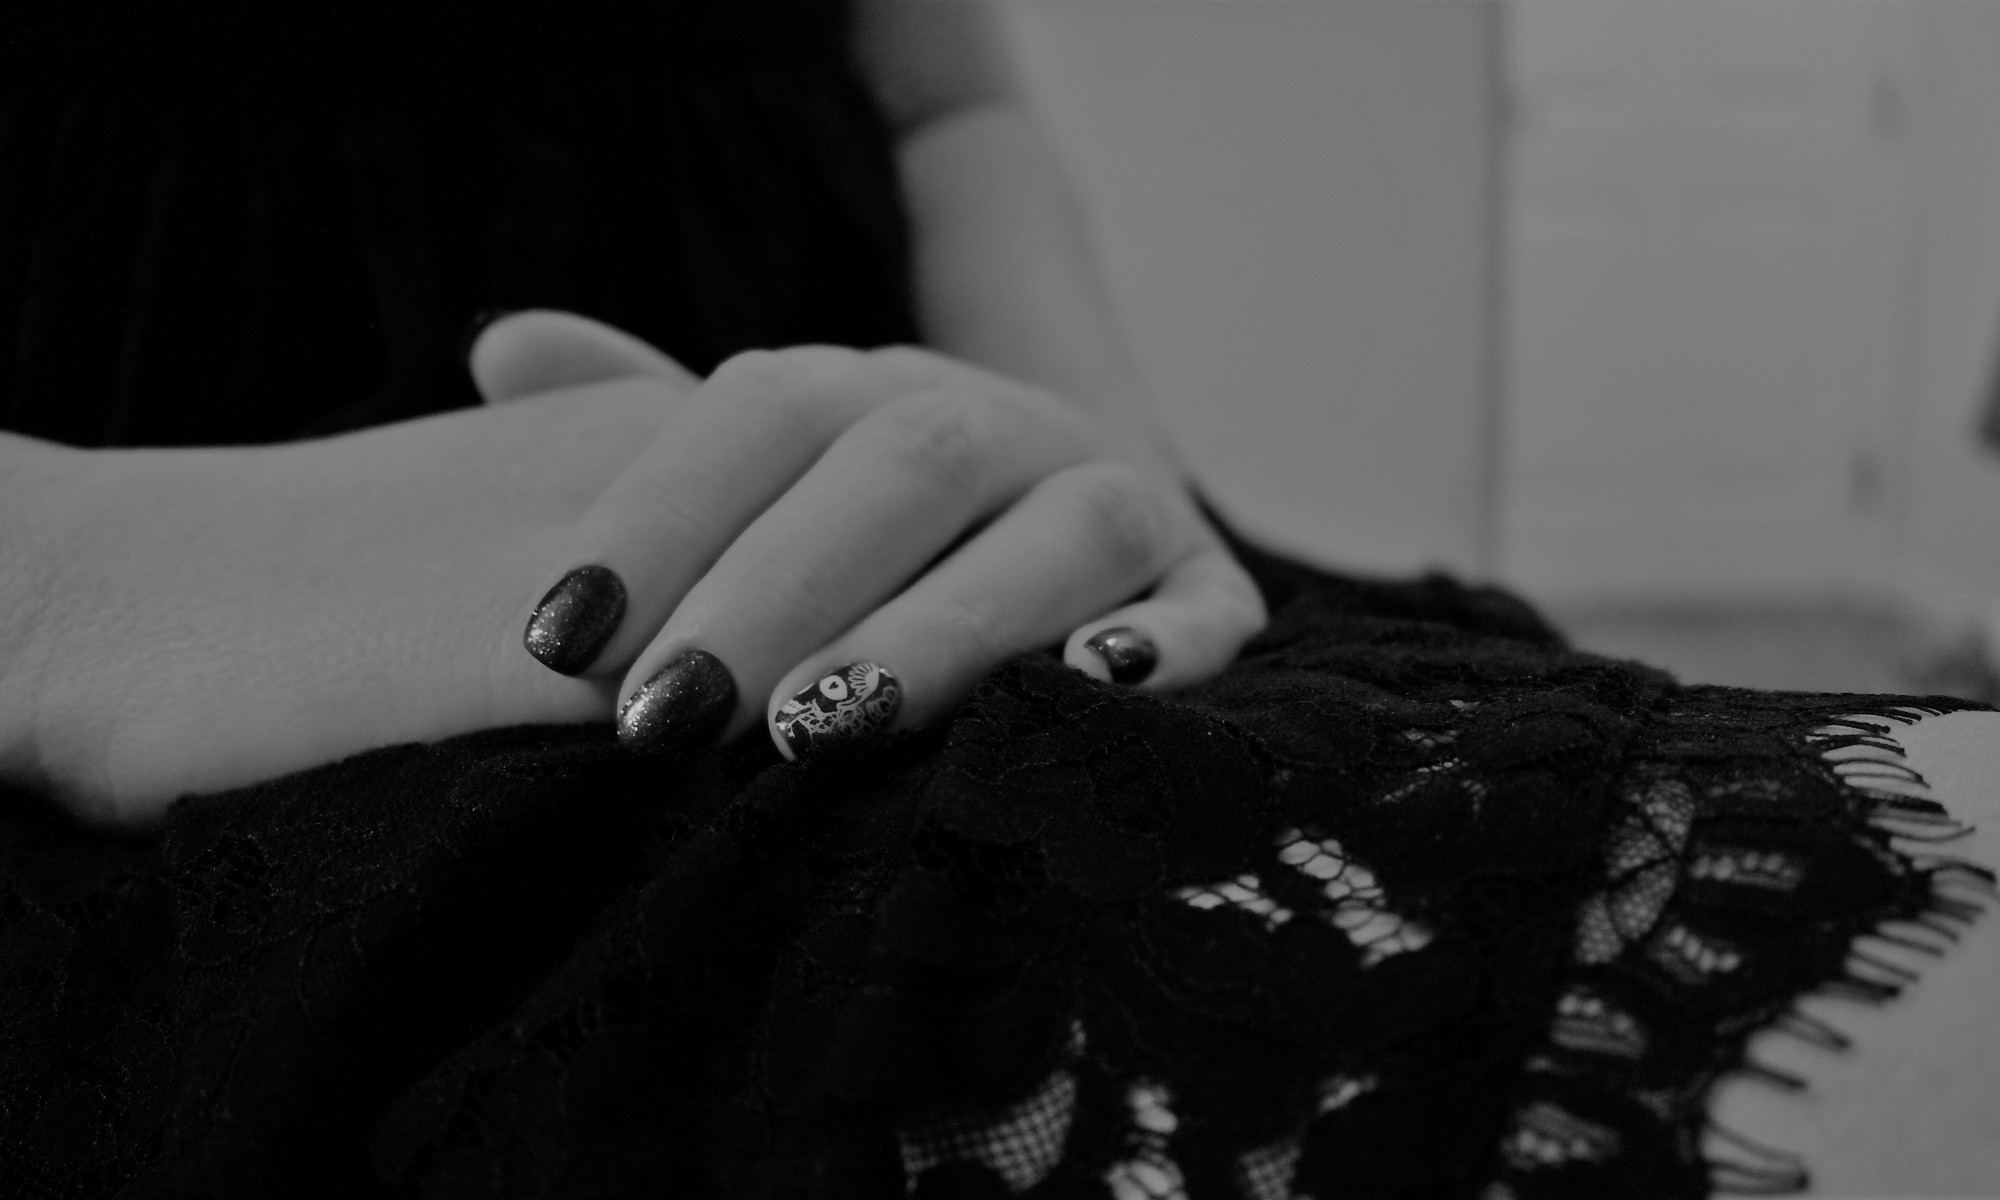 painted nails resting on black lace dress